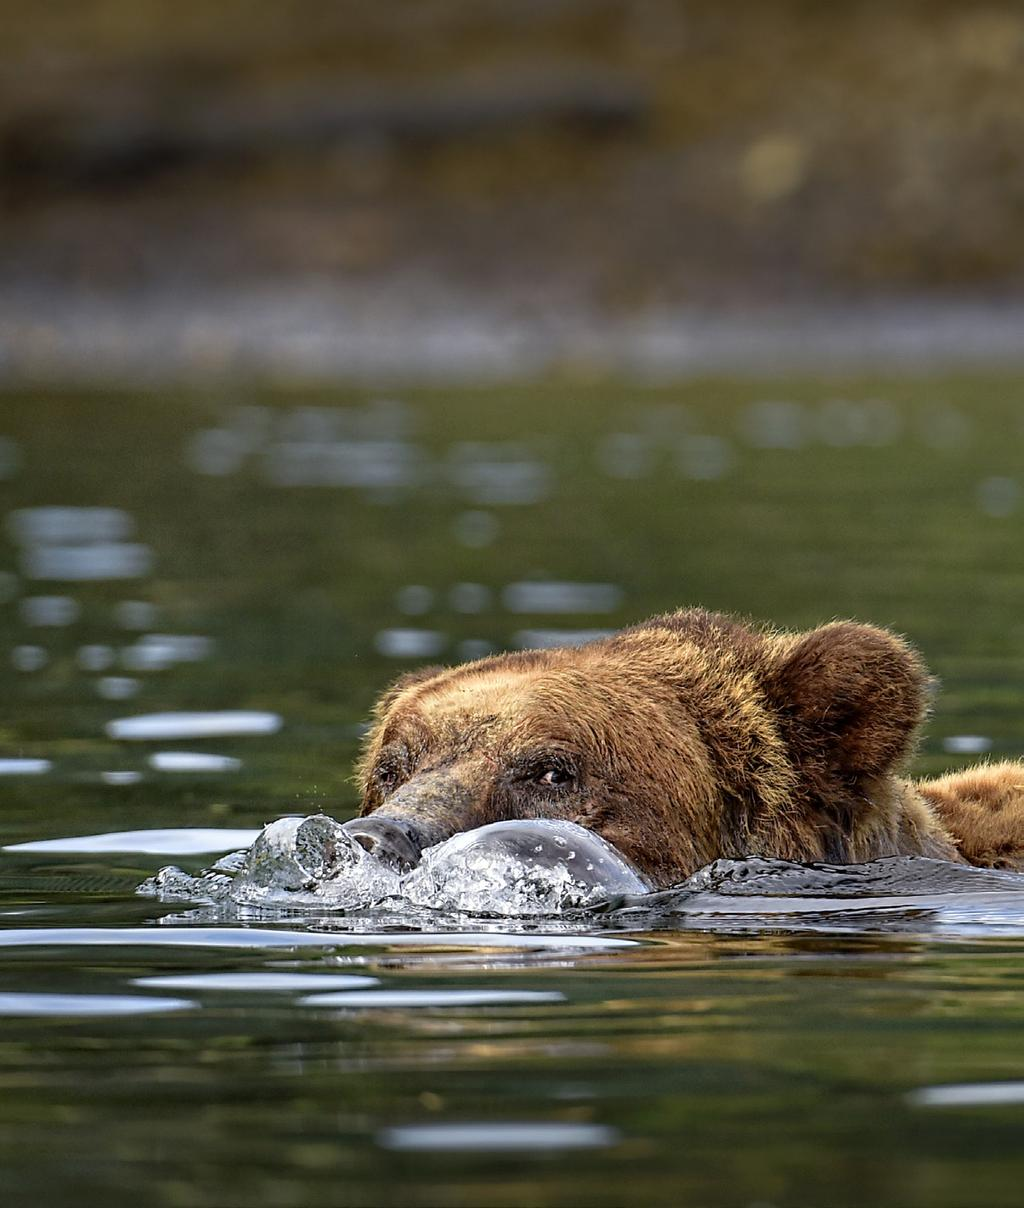 50 PhotoNews BY MICHELLE VALBERG THE GRIZZLIES OF THE